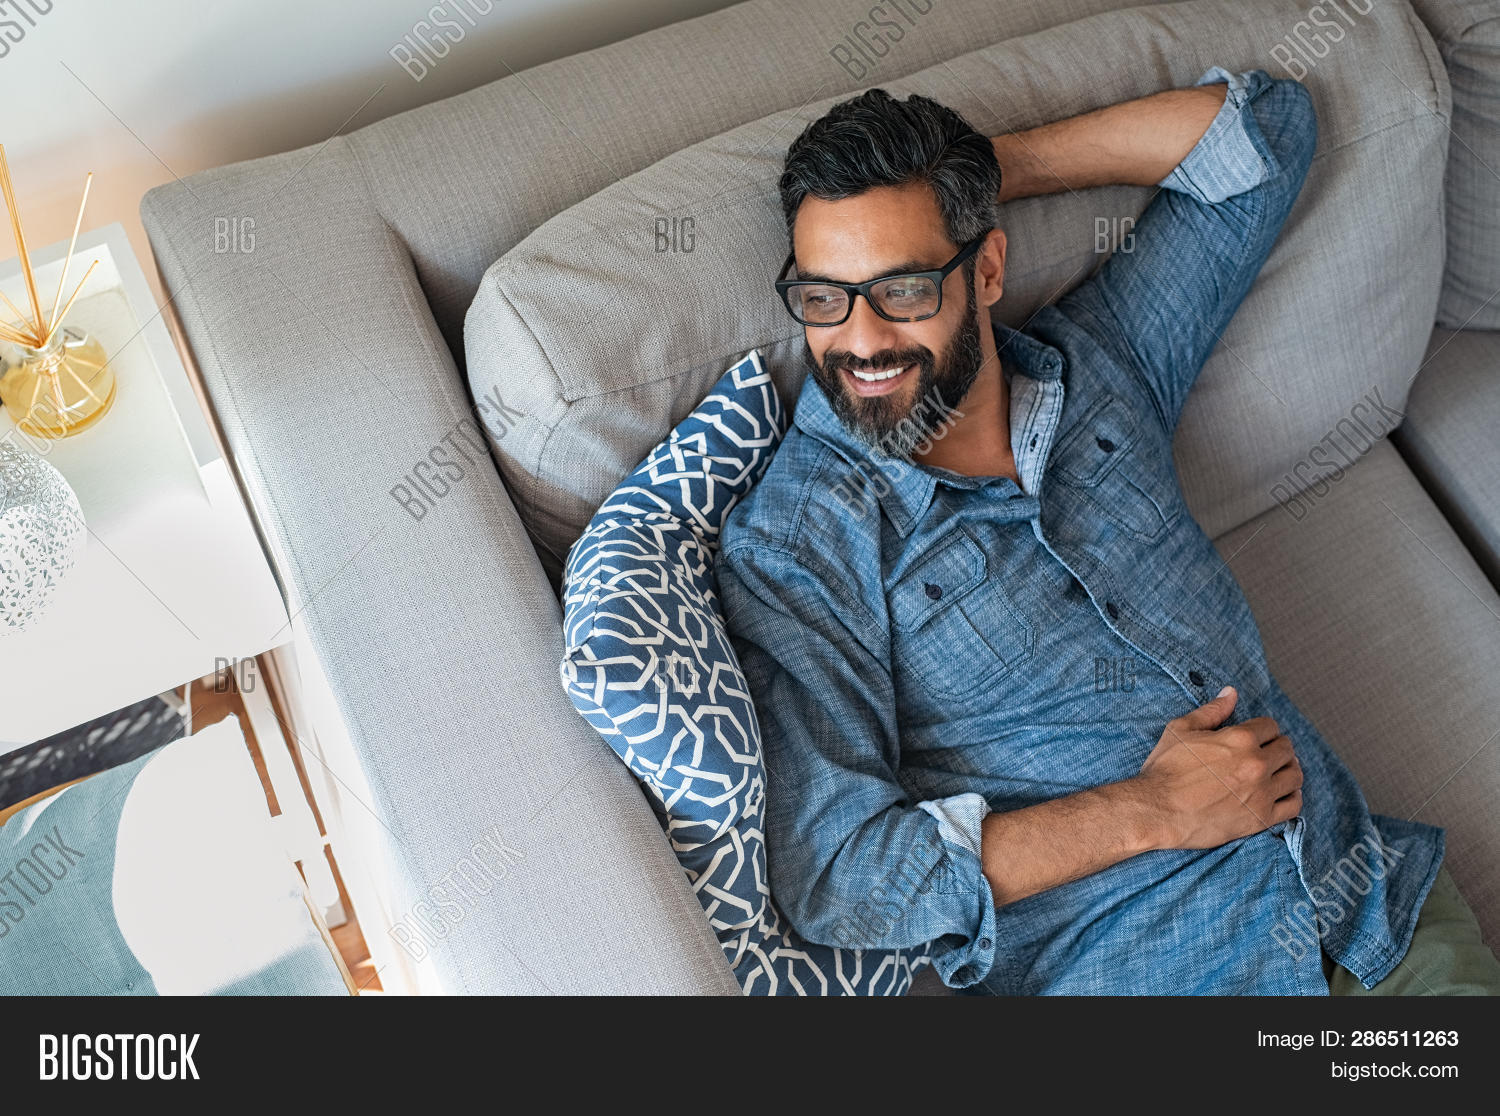 Mature man resting on sofa and thinking about the future. Hispanic man lying on couch and looking aw